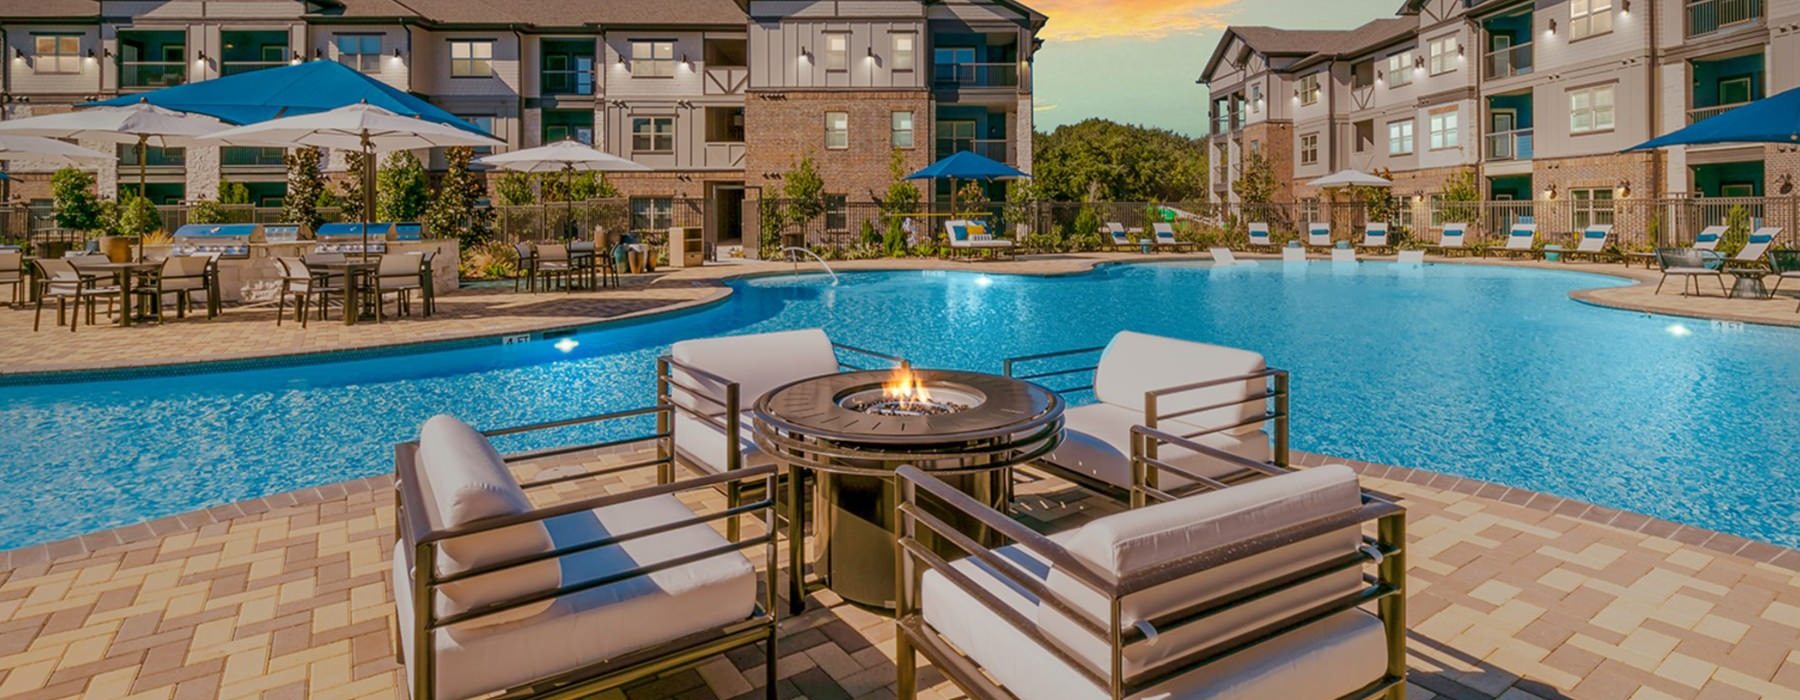 Spacious sparkling pool with sundecks, cabanas and a fire pit.